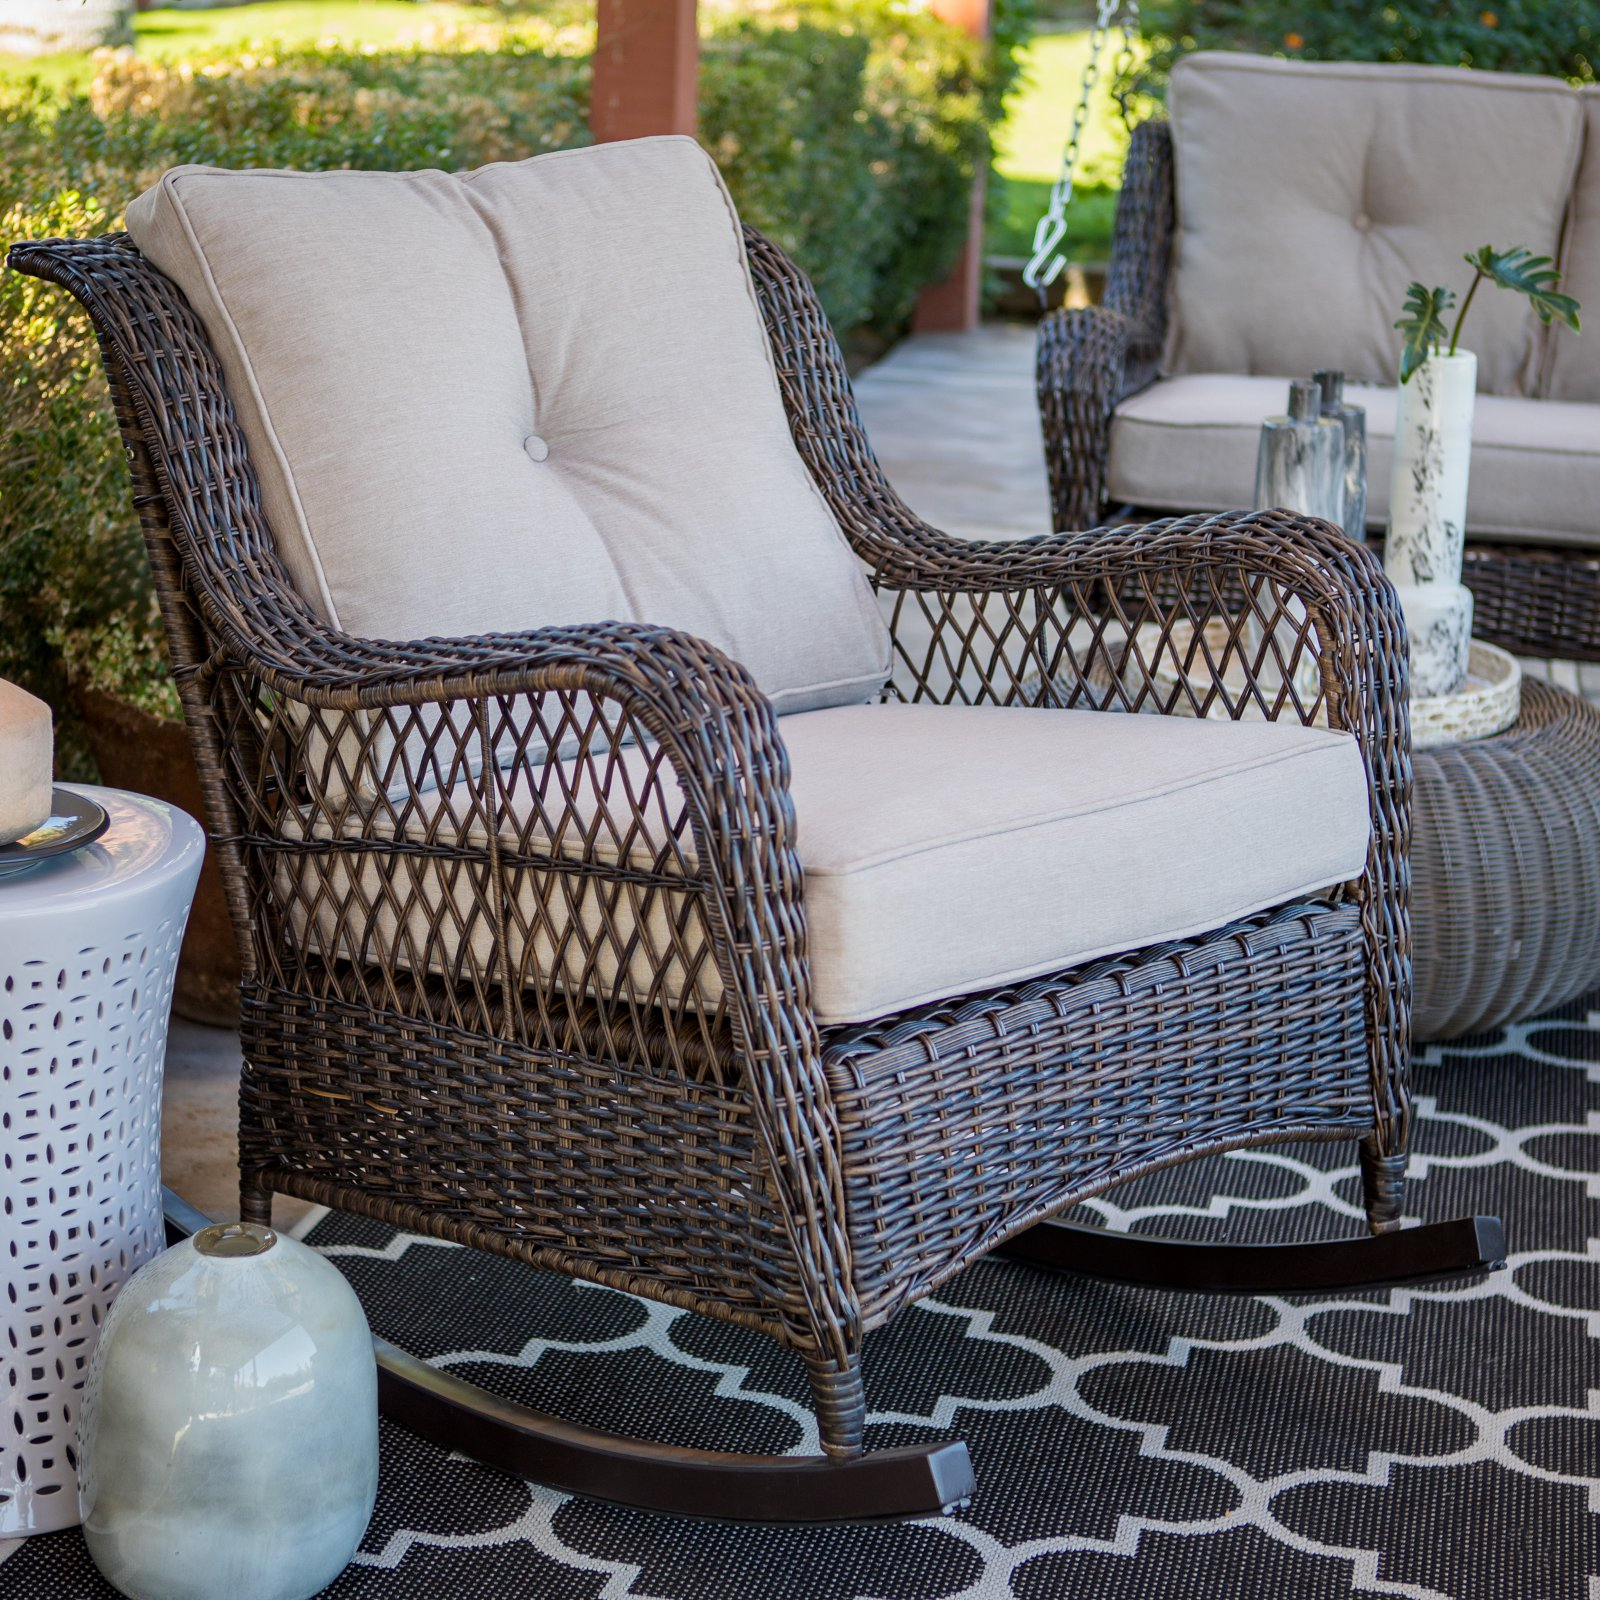 High Quality Belham Living Montauk Resin Wicker Outdoor Rocking Chair With Cushions